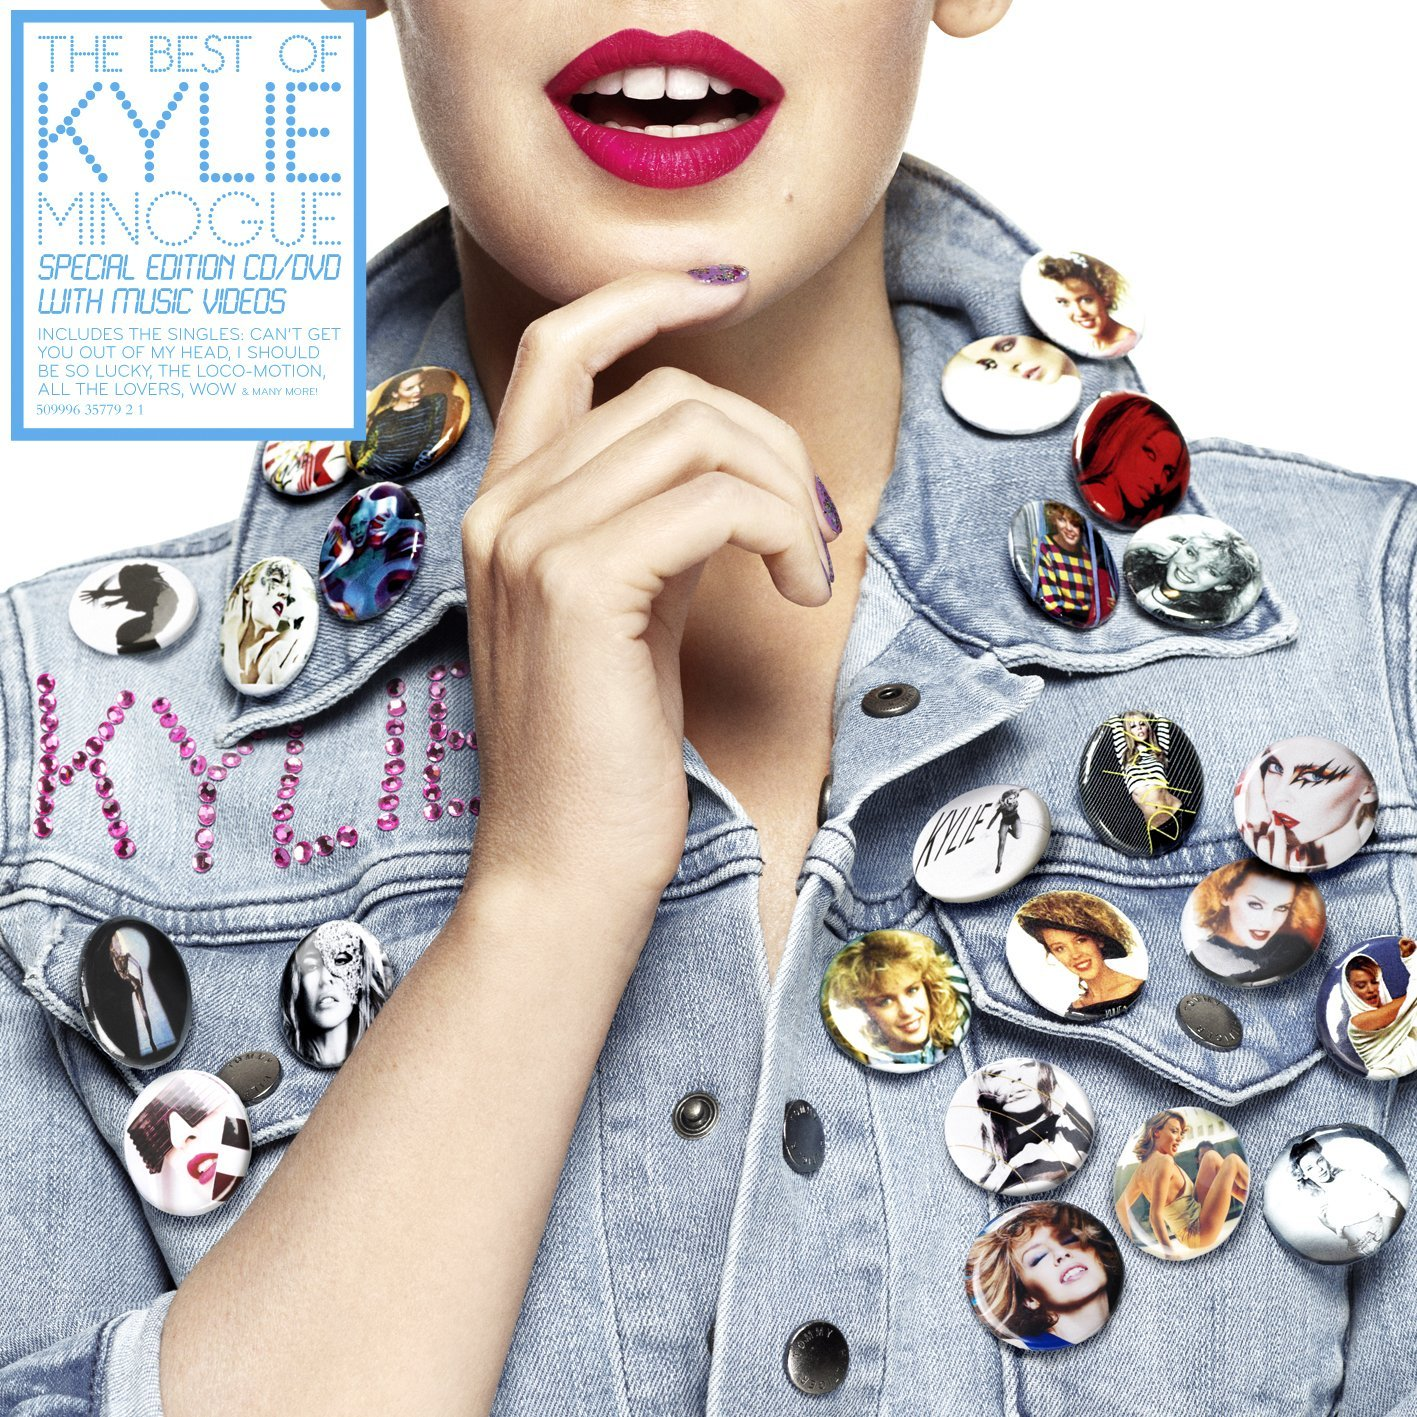 http://1.bp.blogspot.com/-SvlvKZfaBFc/T6PlAJ6nG9I/AAAAAAAAH-s/JBkGvdhvrAg/s1600/Kylie-Minogue-The-Best-Of-Kylie-Minogue-2012-iTunes-Plus-AAC-m4a.jpg